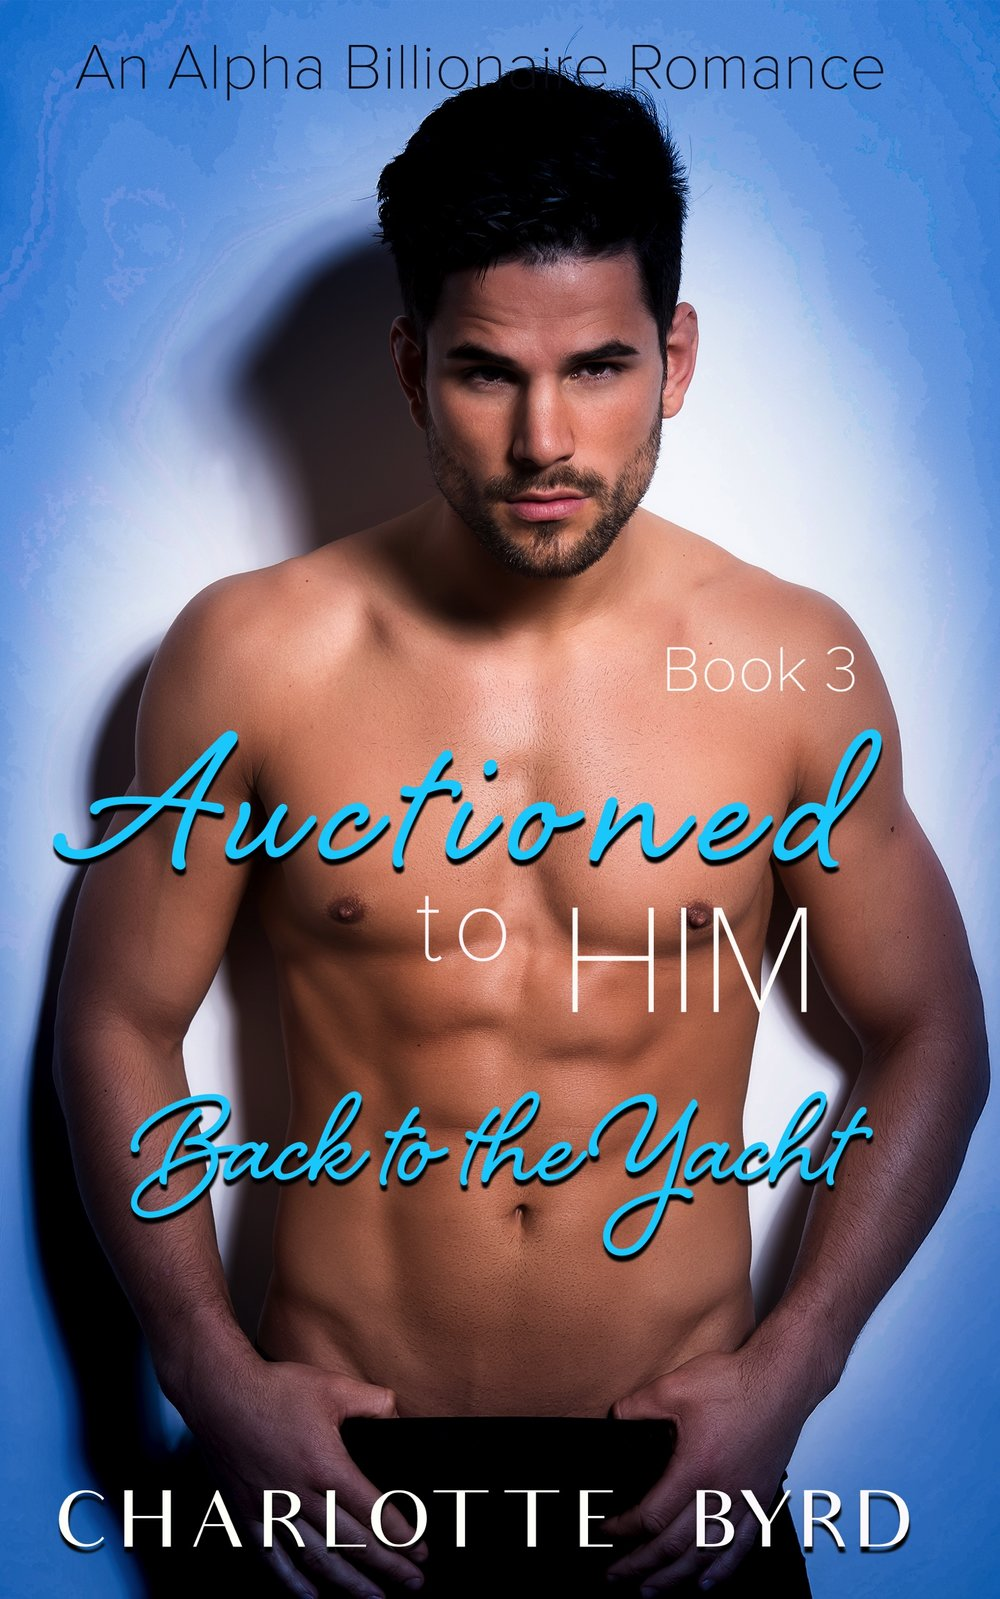 FREE on Kindle Unlimited! - The hotly anticipated third book continues the sensual saga of Ellie and Aiden.Mr. Black is Aiden and Aiden is Mr. Black. They are the same person except that they're not. Aiden is kind and sweet and Mr. Black is demanding and rule-oriented.One thing is for sure, Aiden Black is as beautiful and flawless on the outside as he is tormented and damaged on the inside.I'm a good girl who had never even had a one-night stand before I went to his yacht party. And there, I let myself be auctioned off to the highest bidder.Ever since that night, Mr. Black's scorching flames have singed me with the darkest of pleasures.I crave him and I couldn't stay away from him even if I wanted to. He is my addiction. He is my every desire.So, when he invites me to another one of his yacht parties…I can't say no.